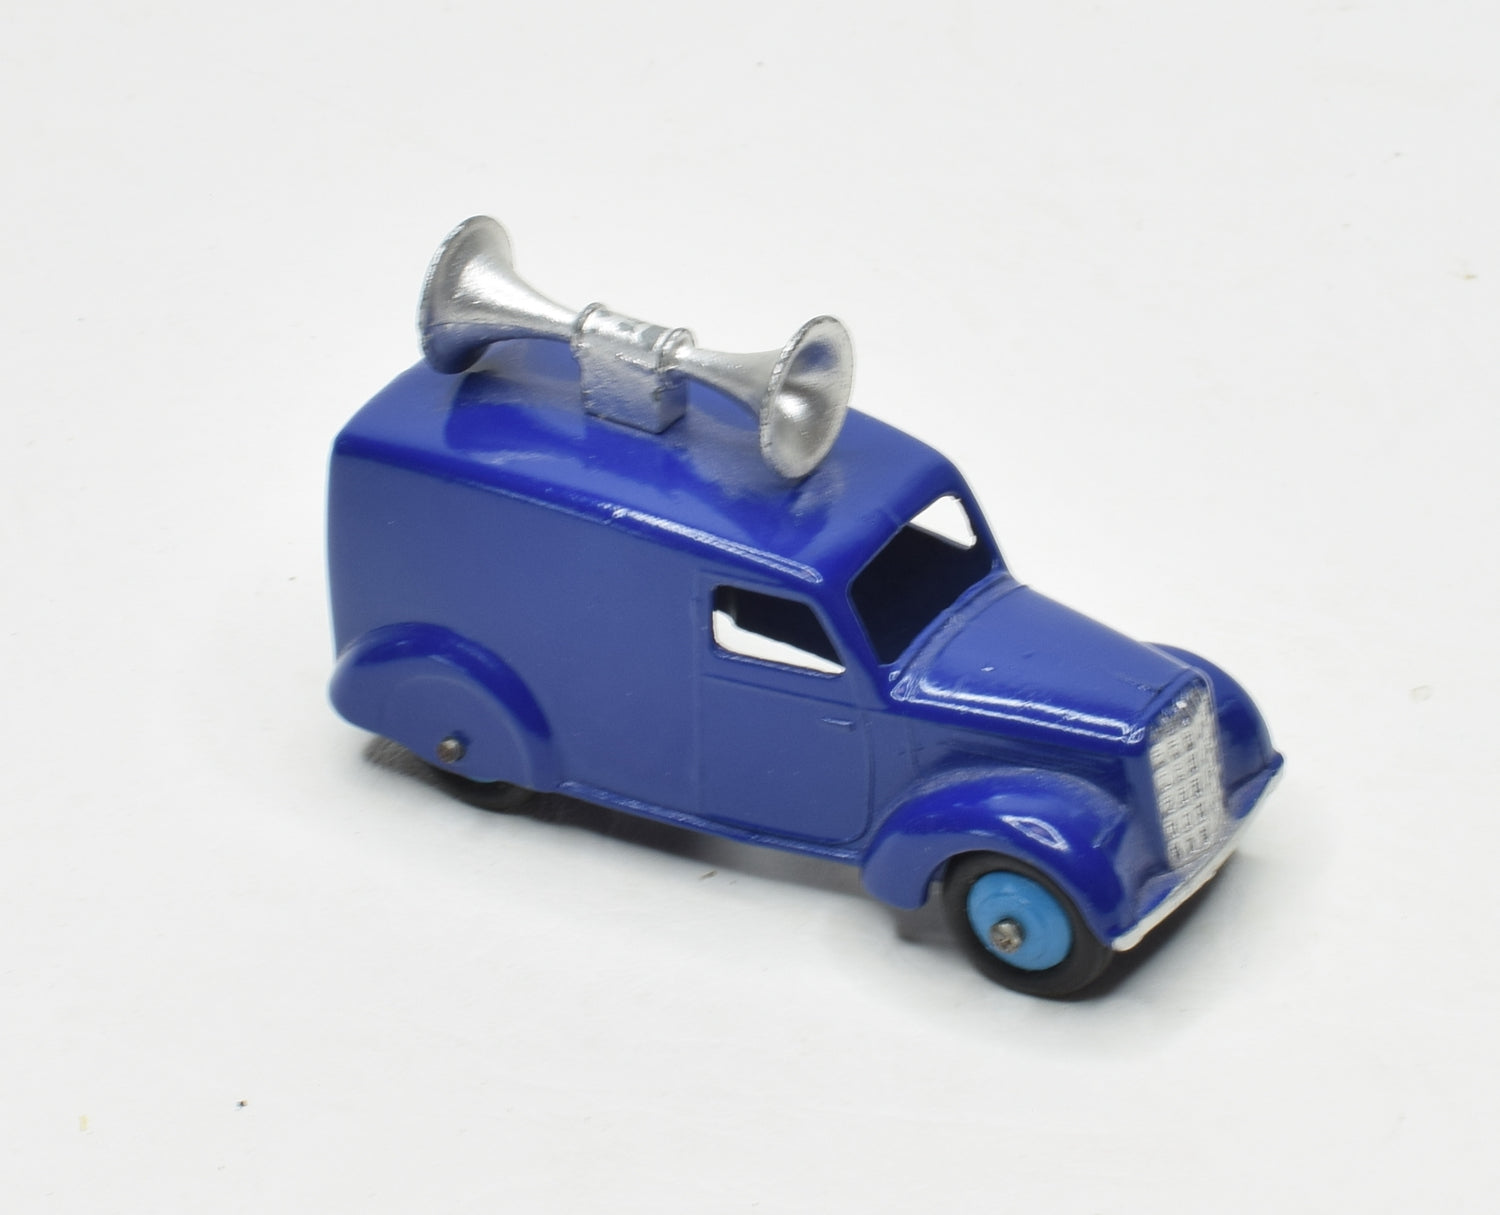 Dinky toys 492 Loud Speaker Van Virtually Mint/Unboxed 'Stenlund' Collection